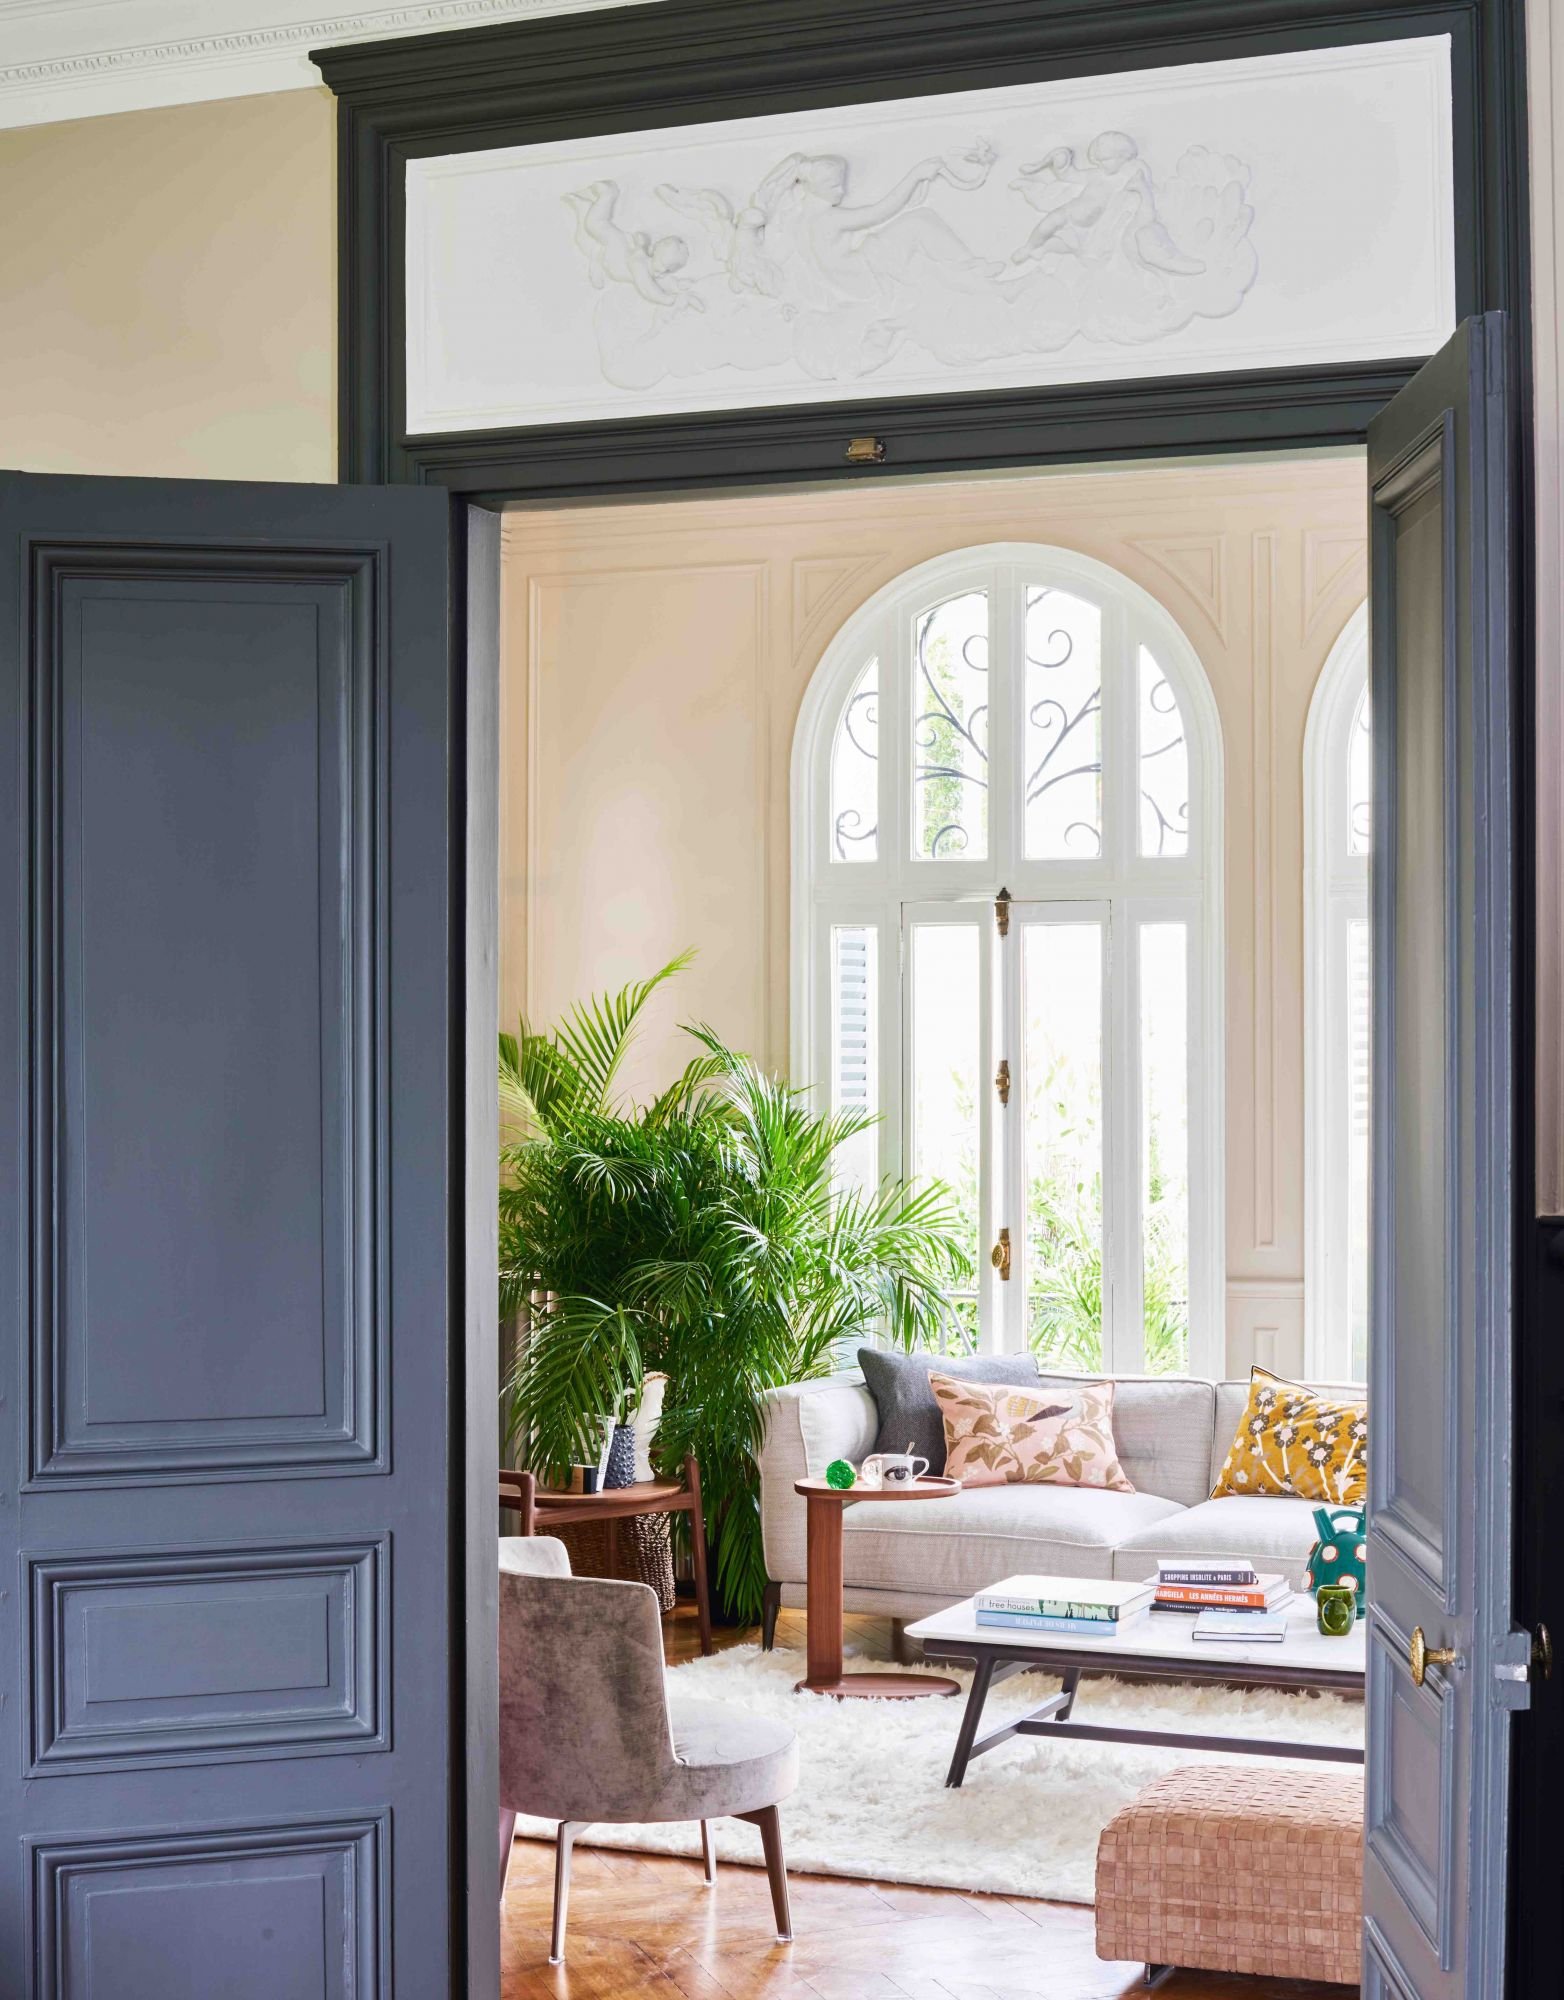 Home Tour: Colourful Details Give This Historic French Villa A Modern Twist